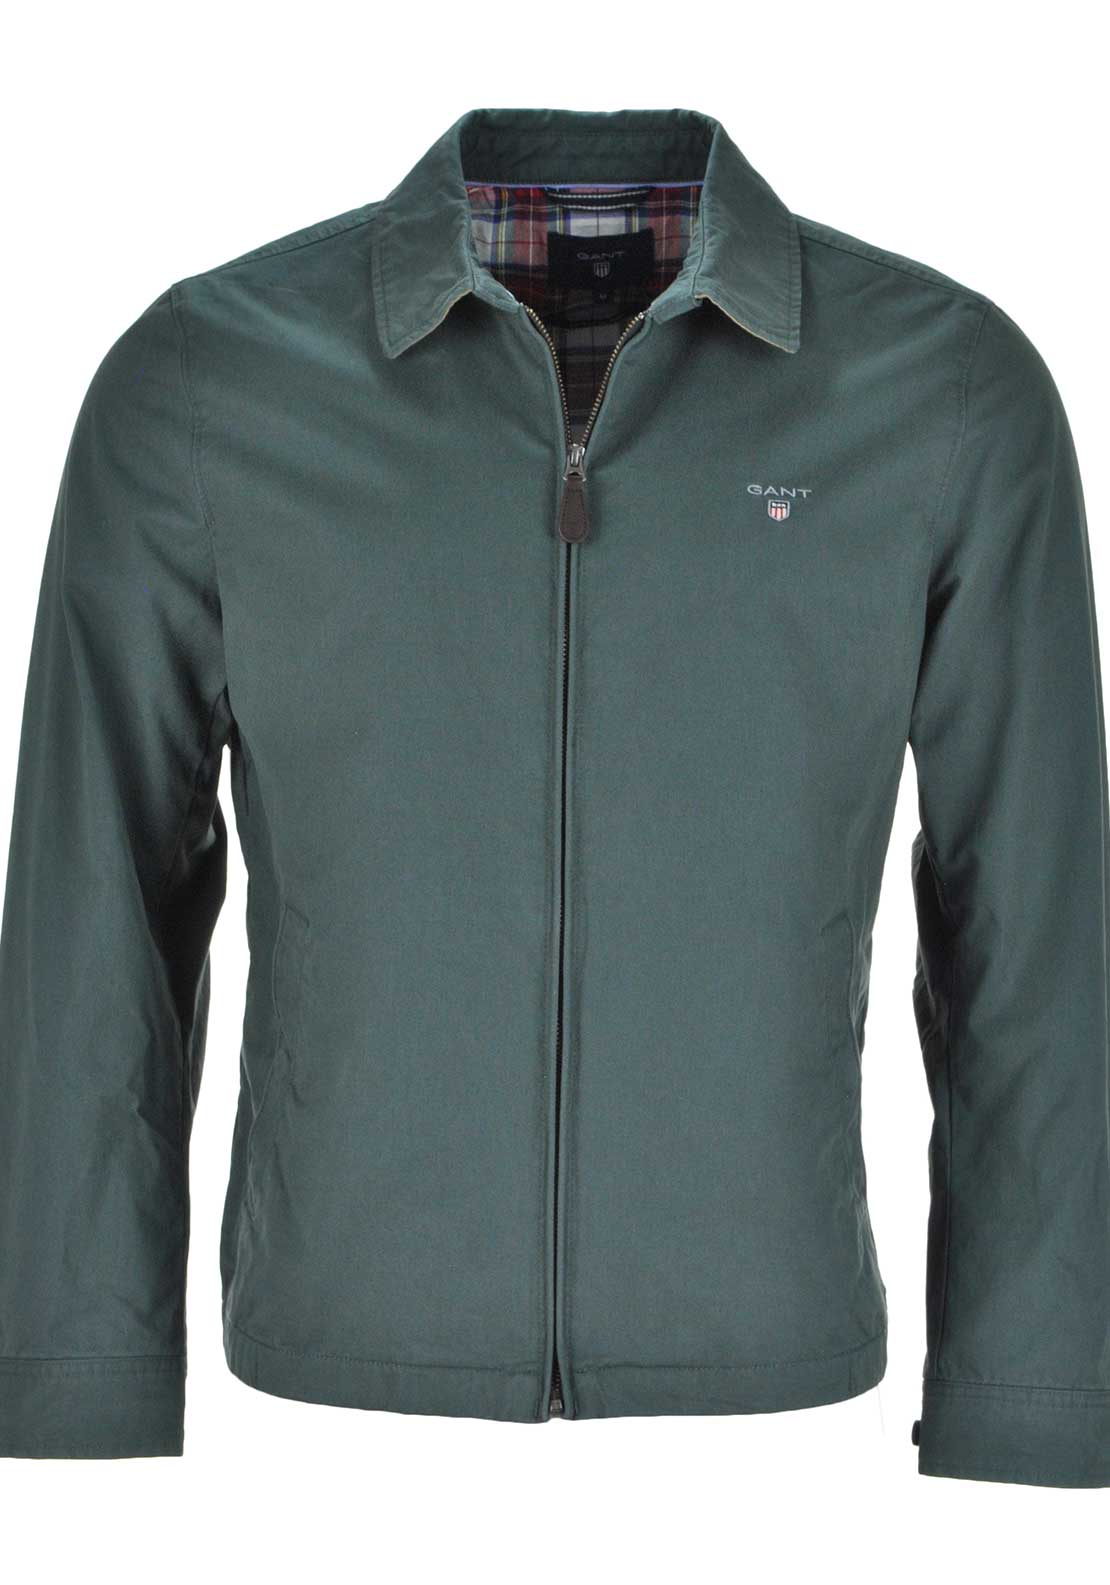 GANT Mens Windcheater Zip Up Jacket, Green